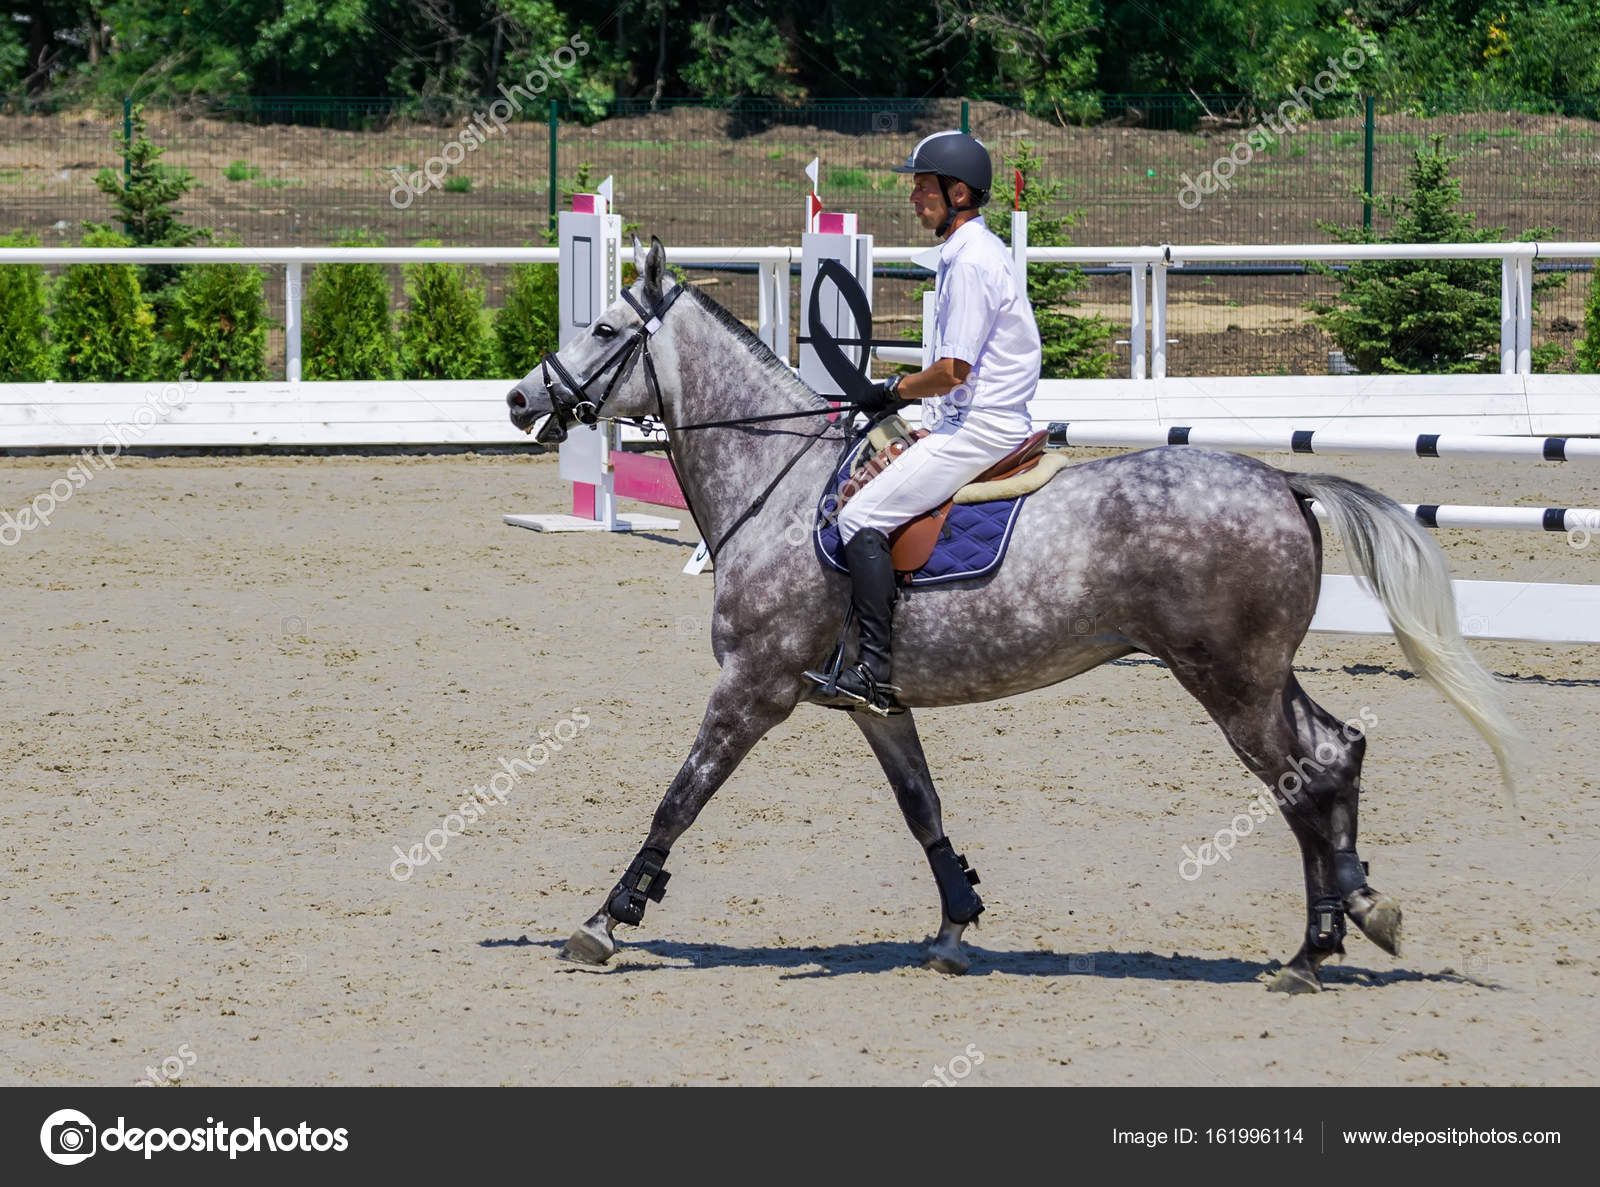 Rider On Gray Horse In Jumping Show Equestrian Sports Stock Photo C Martanovak 161996114